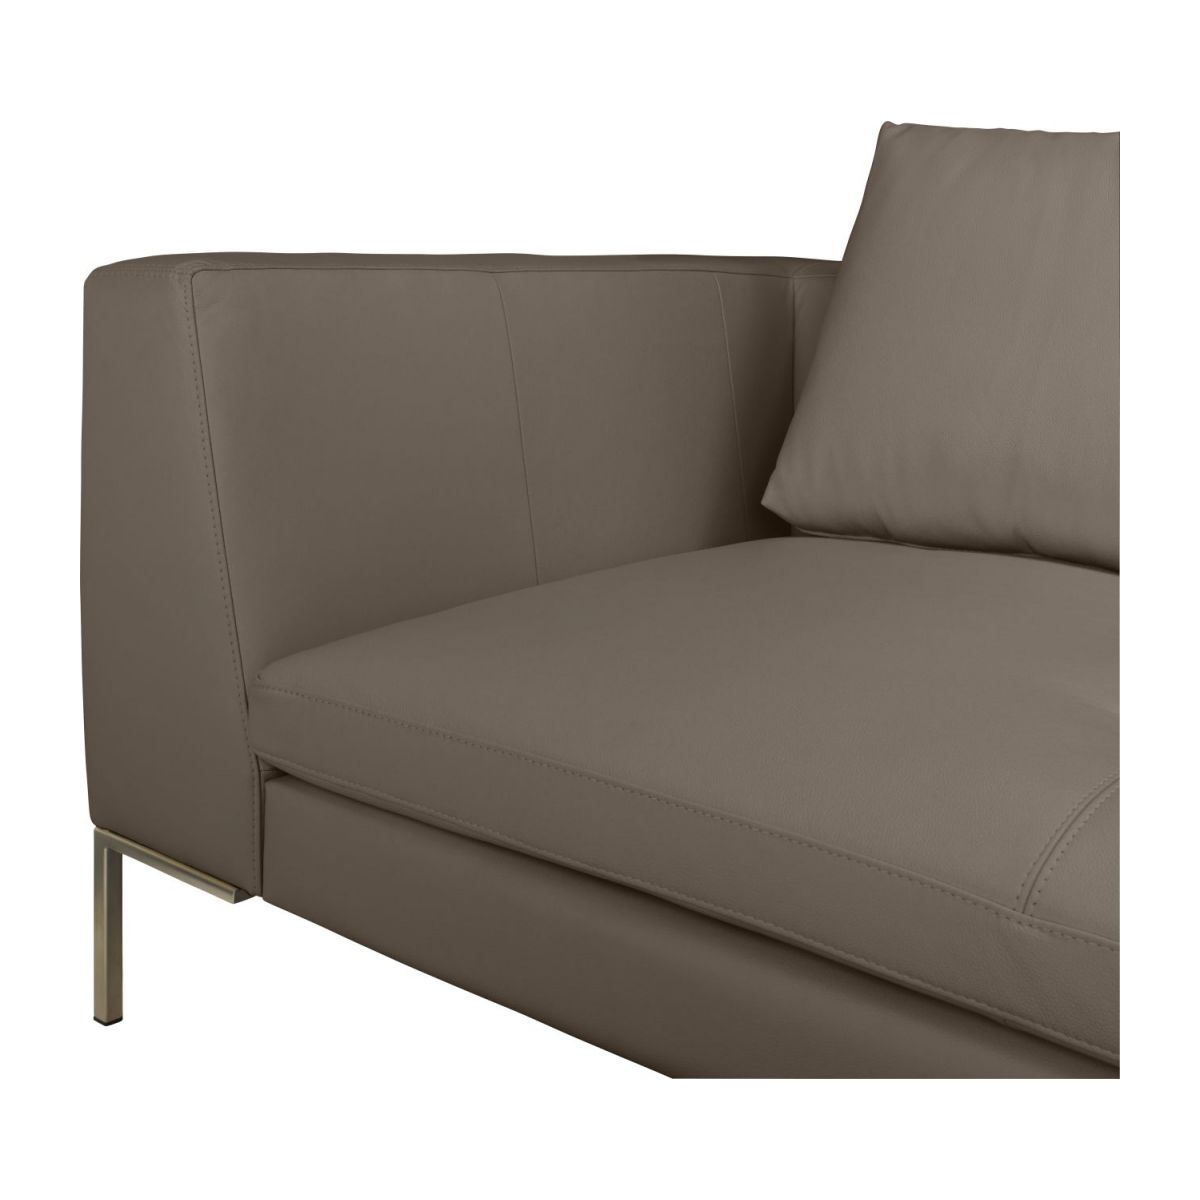 3 seater sofa in Eton veined leather, stone n°6